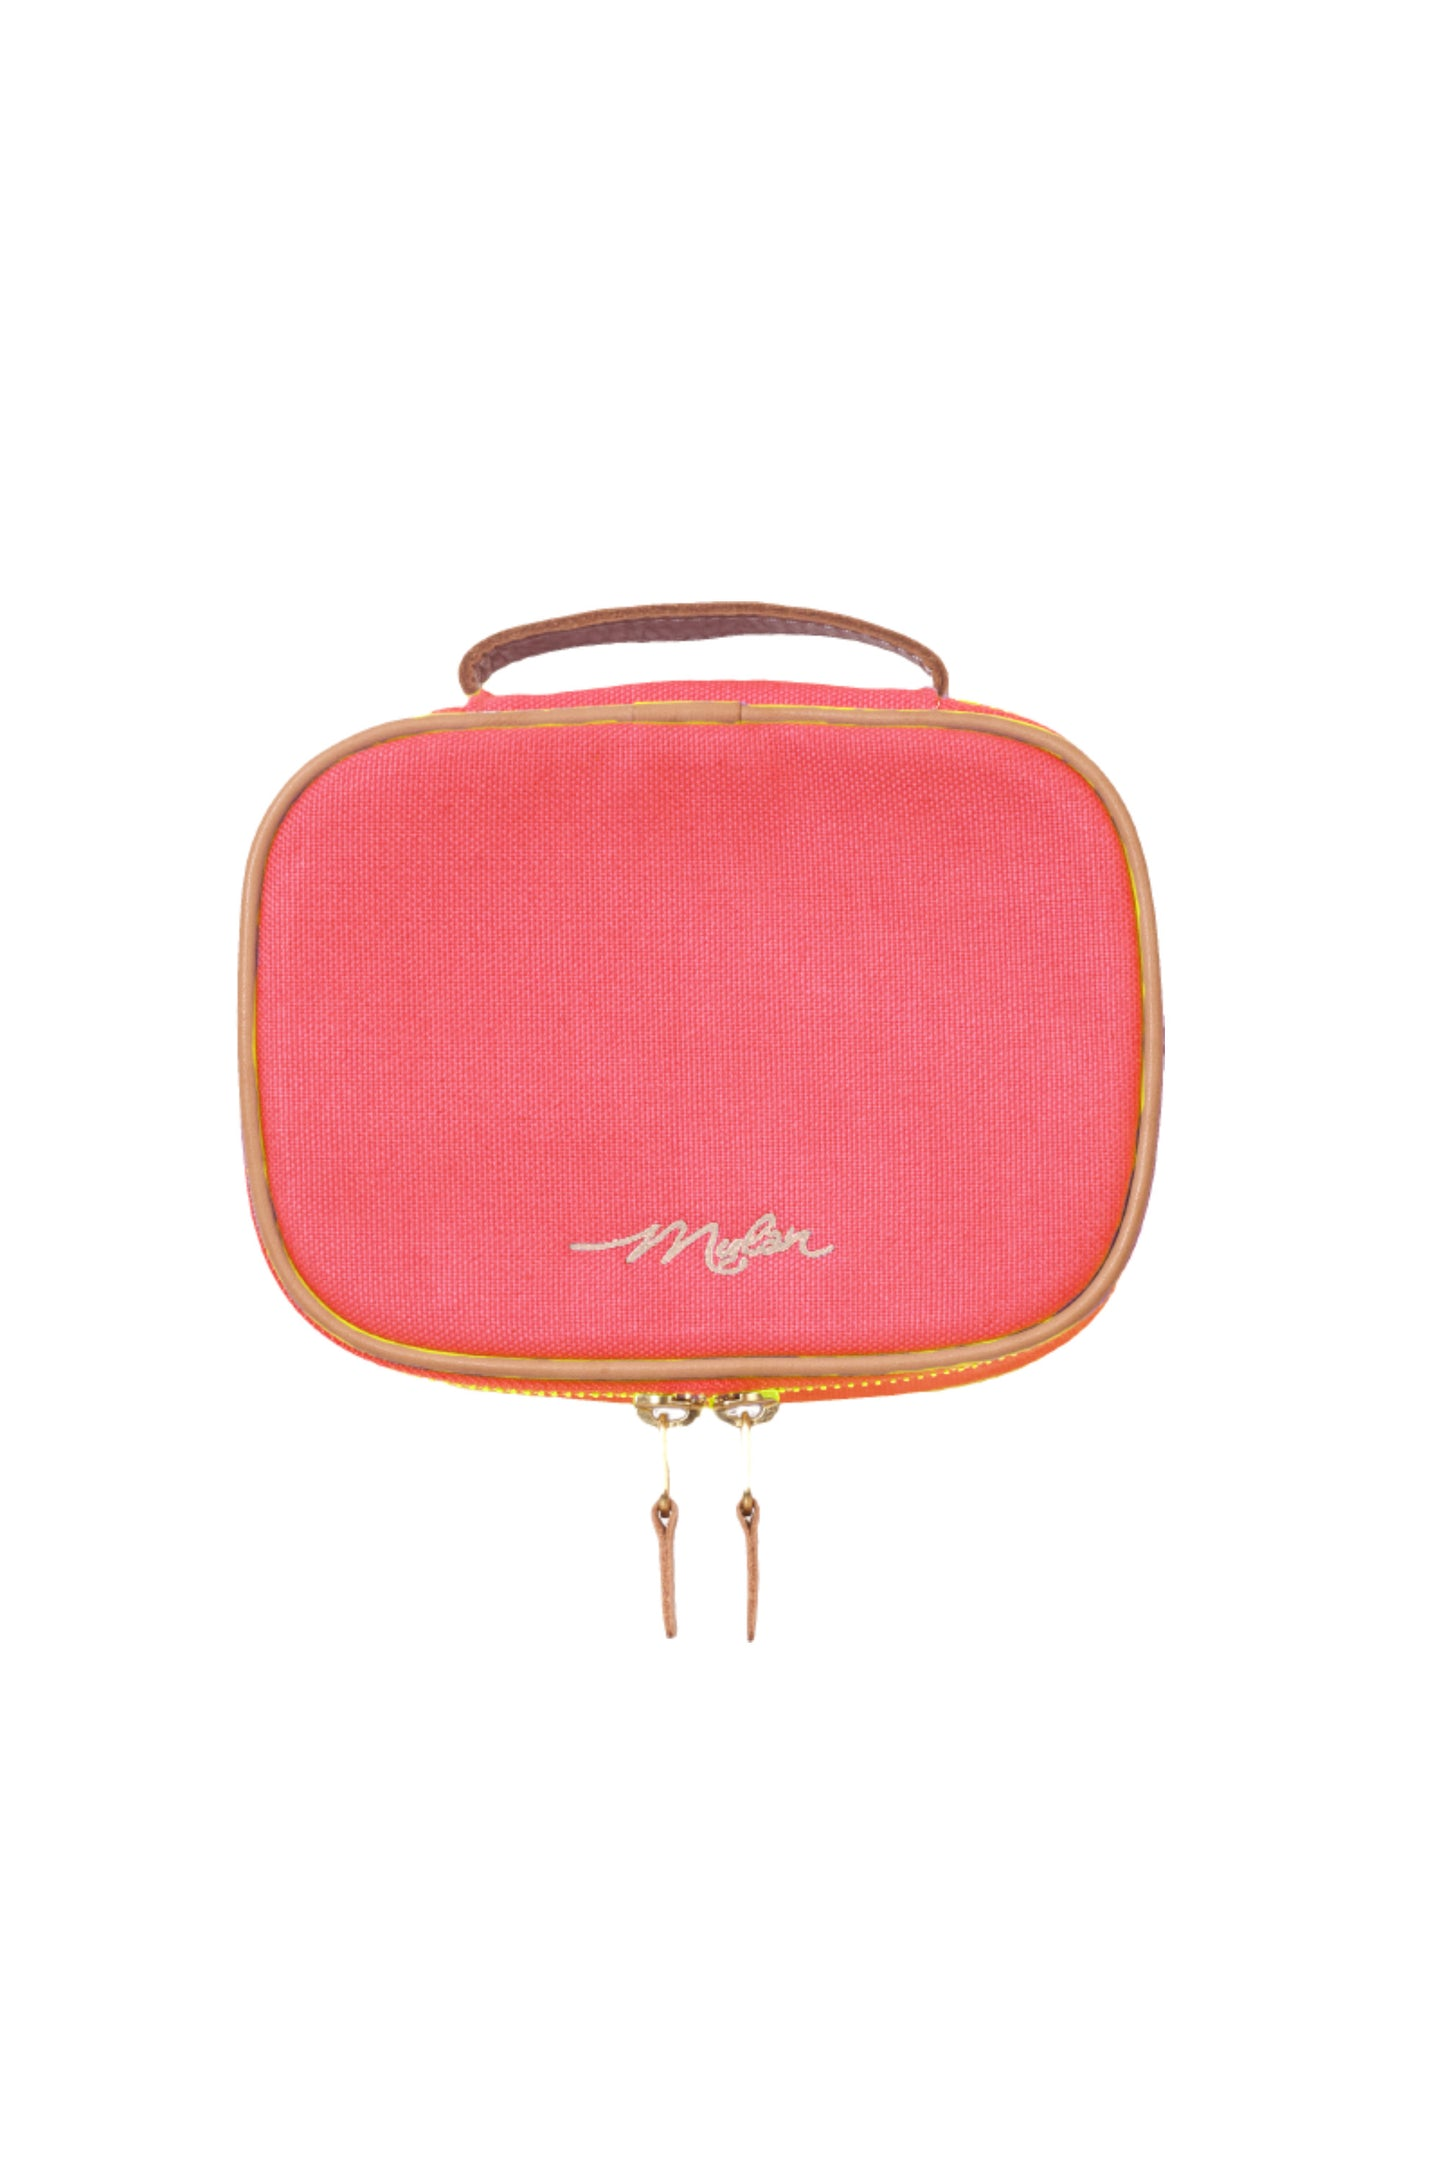 Canvas Cosmetic Pouch | Coral Pink